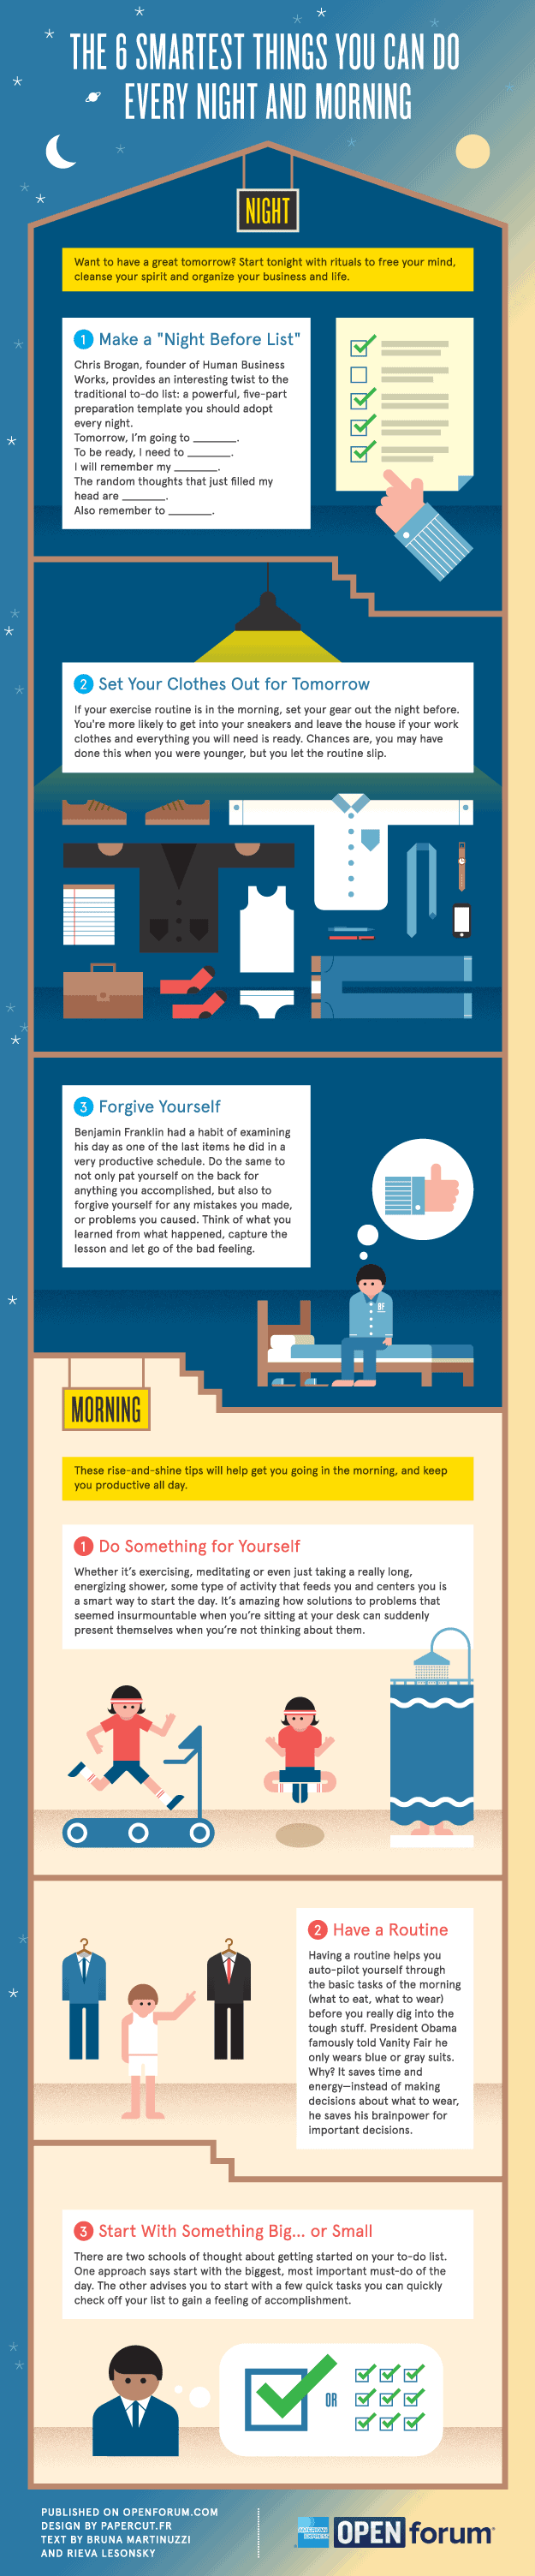 The Six Smartest Things You Can Do Every Night And Morning [infographic]